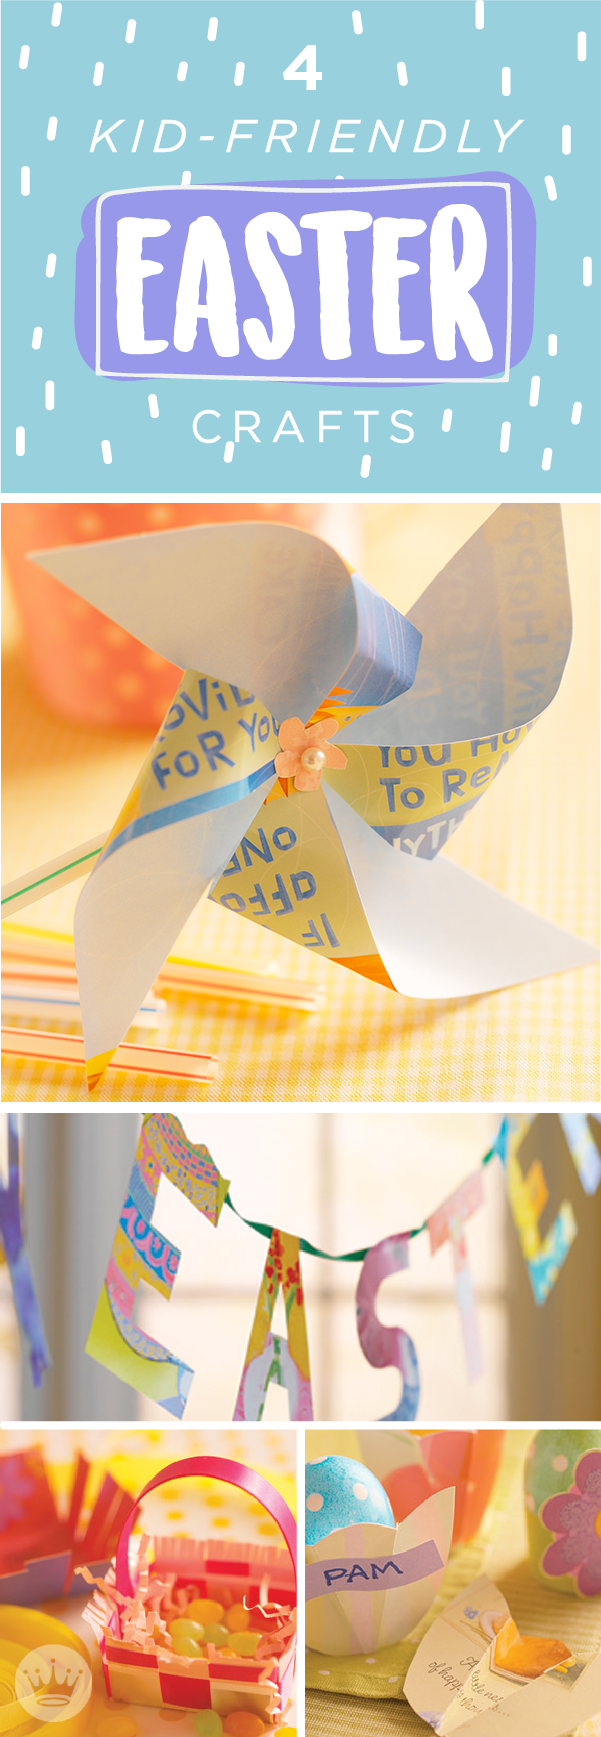 Make some new Easter decorations—and new memories—with a few recycled cards and a little time. Hallmark's Easter crafts are quick-like-a-bunny to make—just print the templates and easy step-by-step instructions to craft your own hoppy Easter treat baskets, egg-cup place cards, pinwheels and garland.